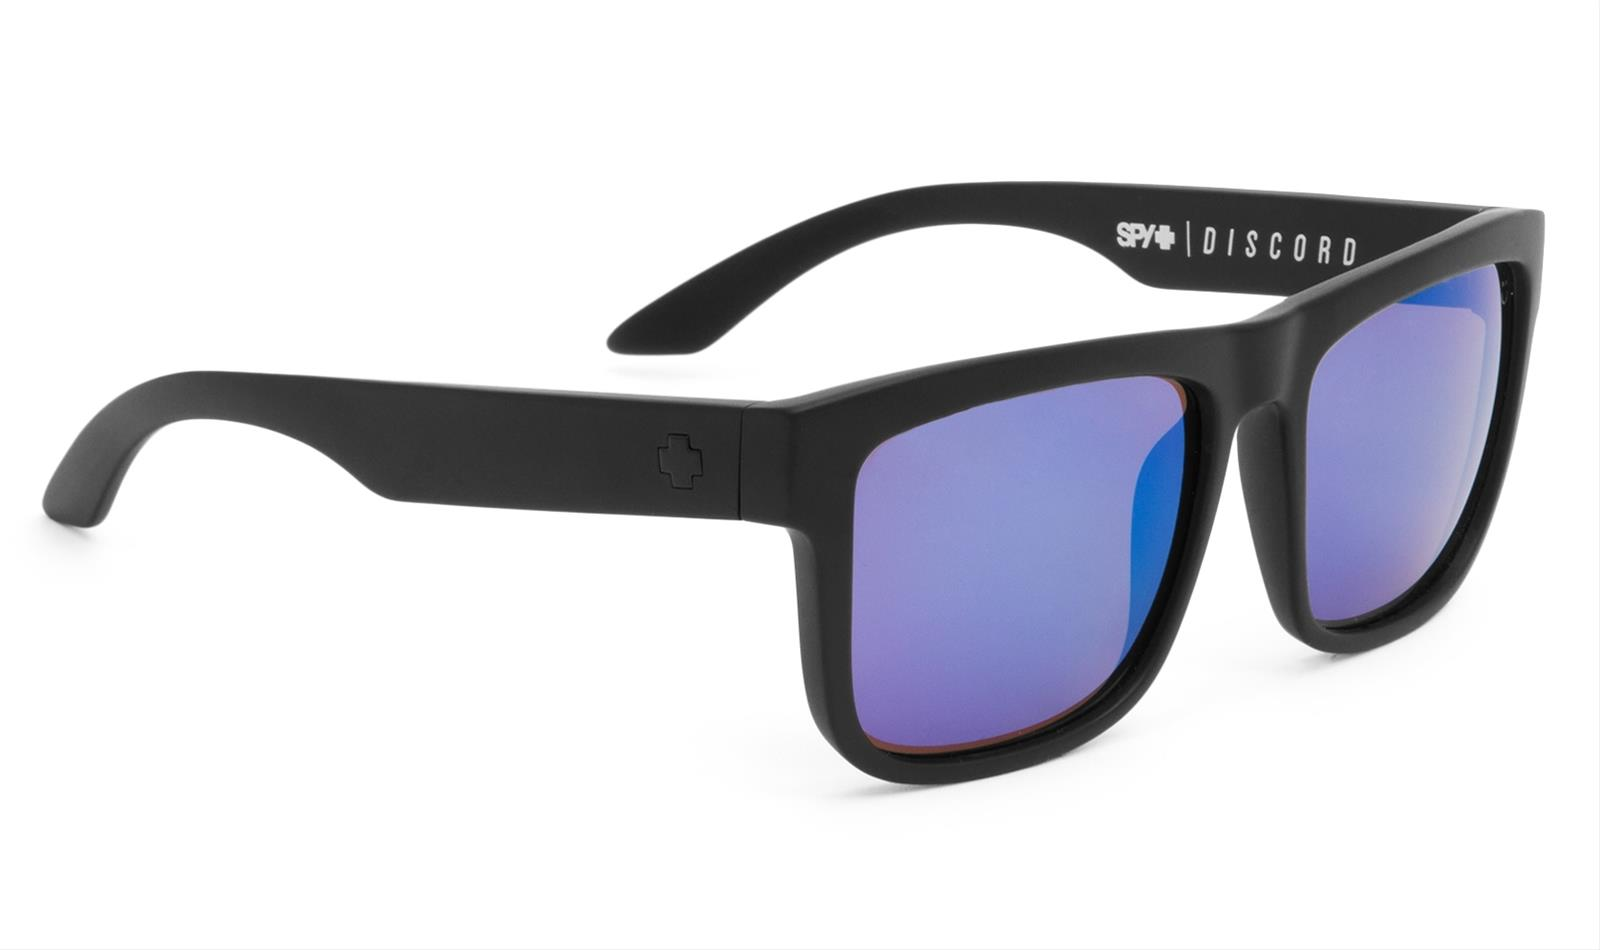 f2a51f43d04c4 SPY Optic Discord Sunglasses 673119374280 - Free Shipping on Orders Over   99 at Summit Racing